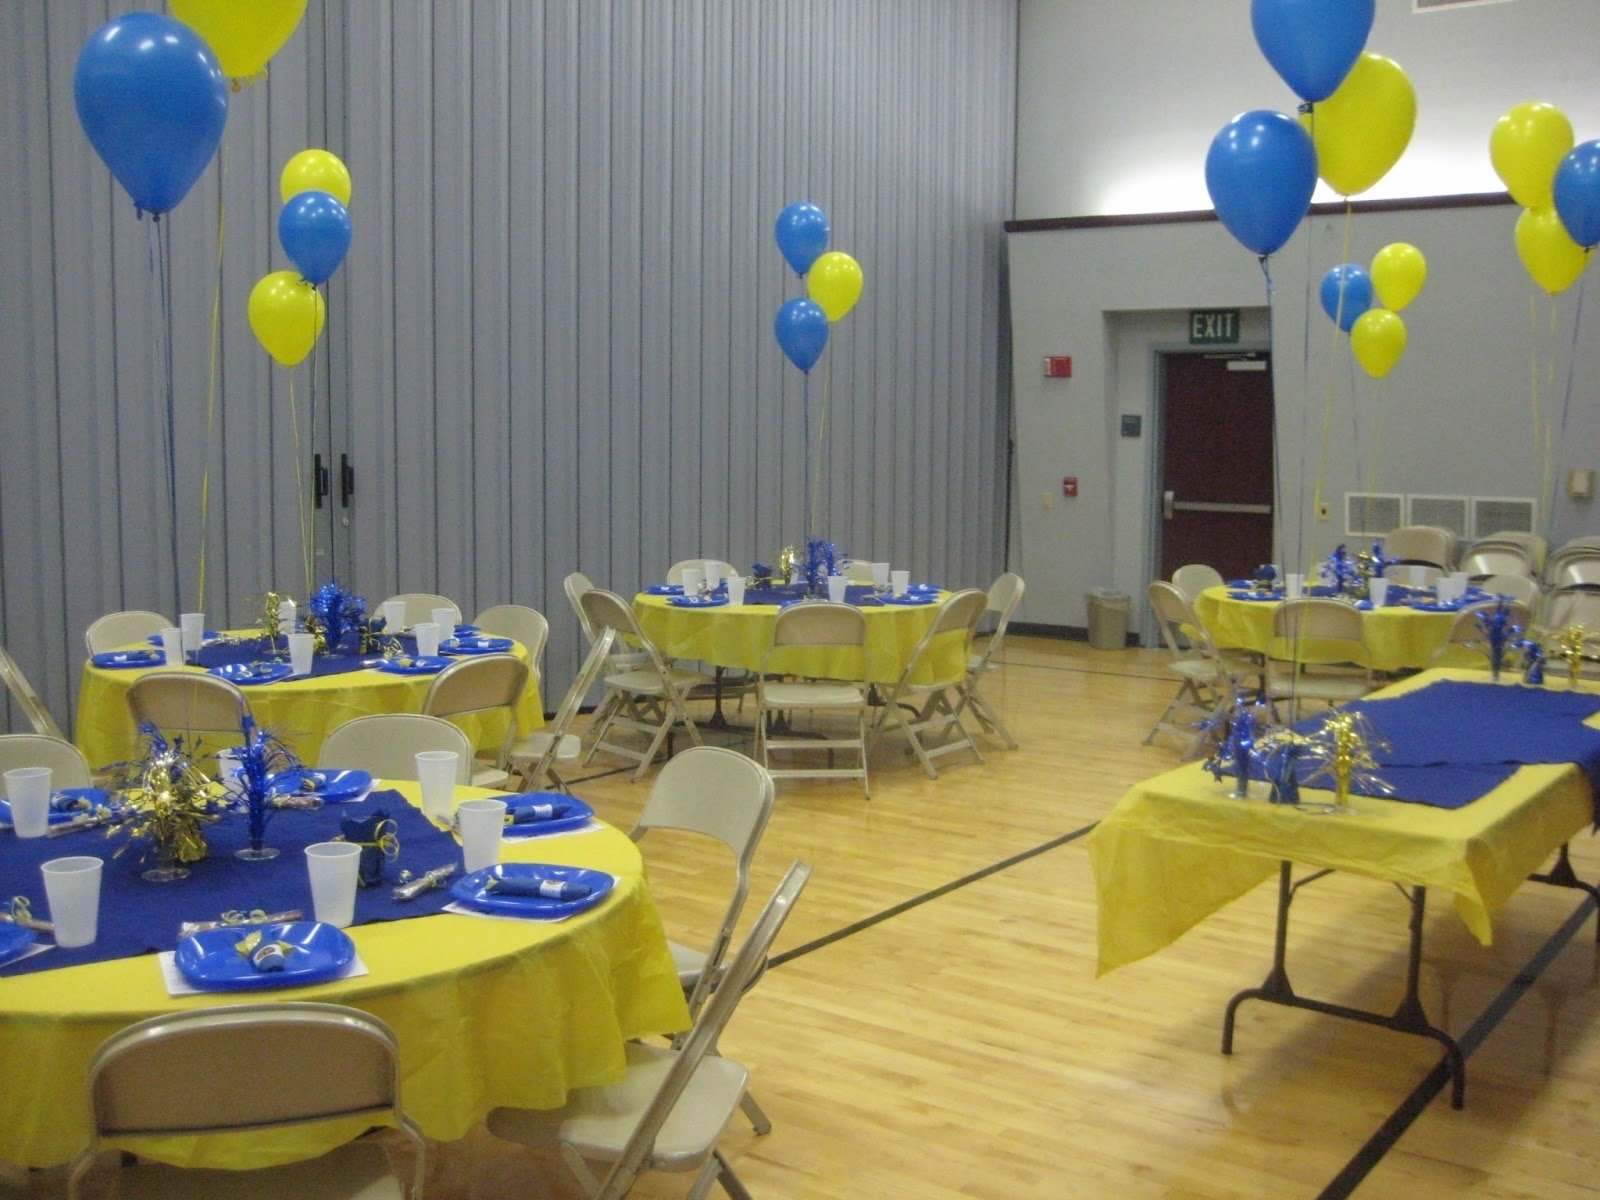 10 Stylish Cub Scout Blue And Gold Banquet Ideas the foulk fam cub scout blue and gold banquet 2 2020